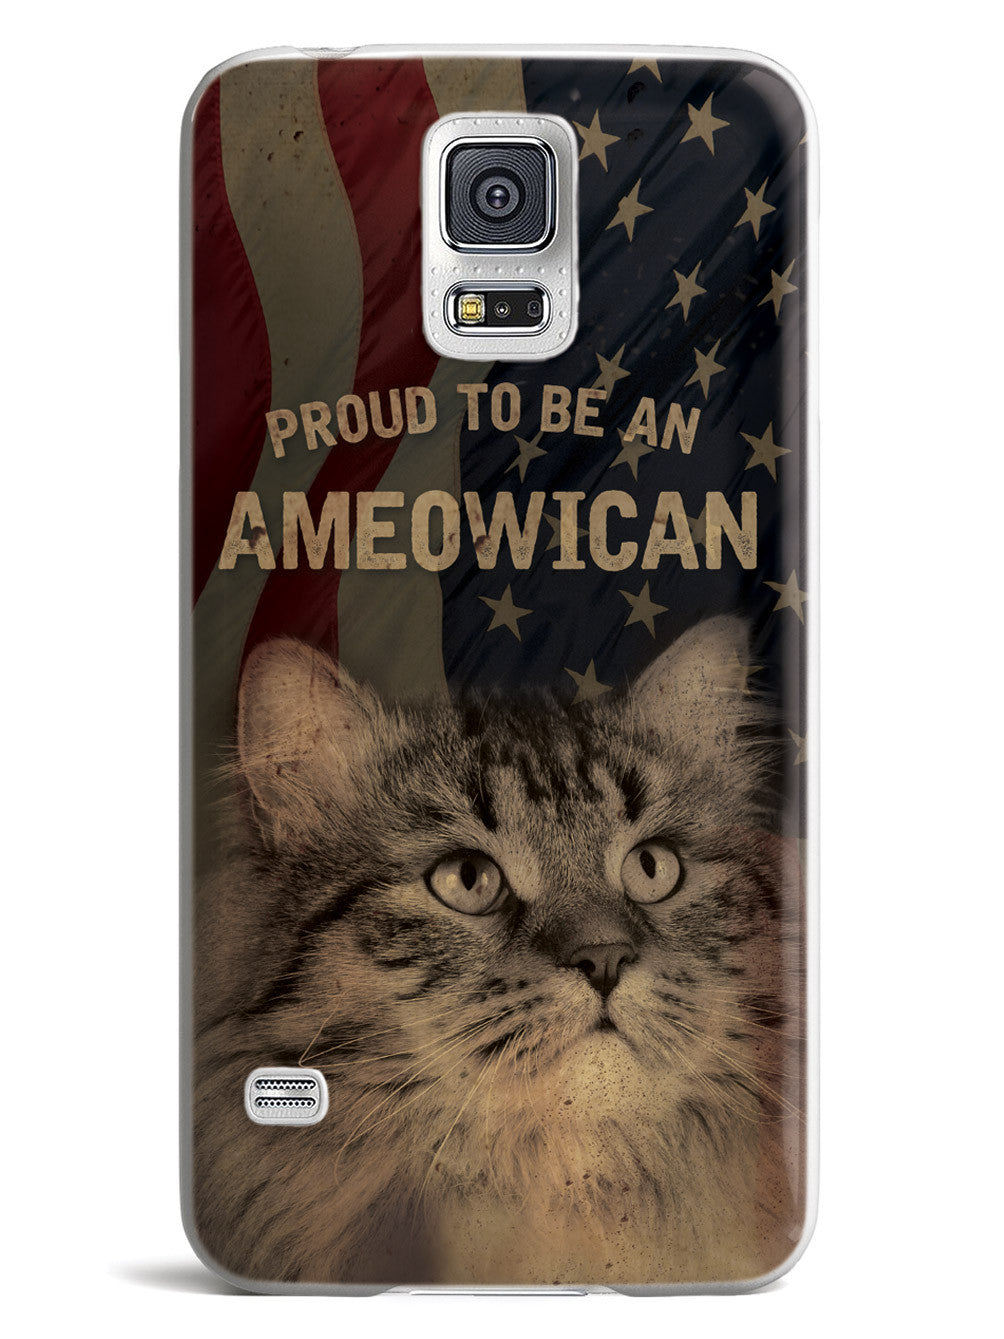 Proud to be an Ameowican - Patriotic Case